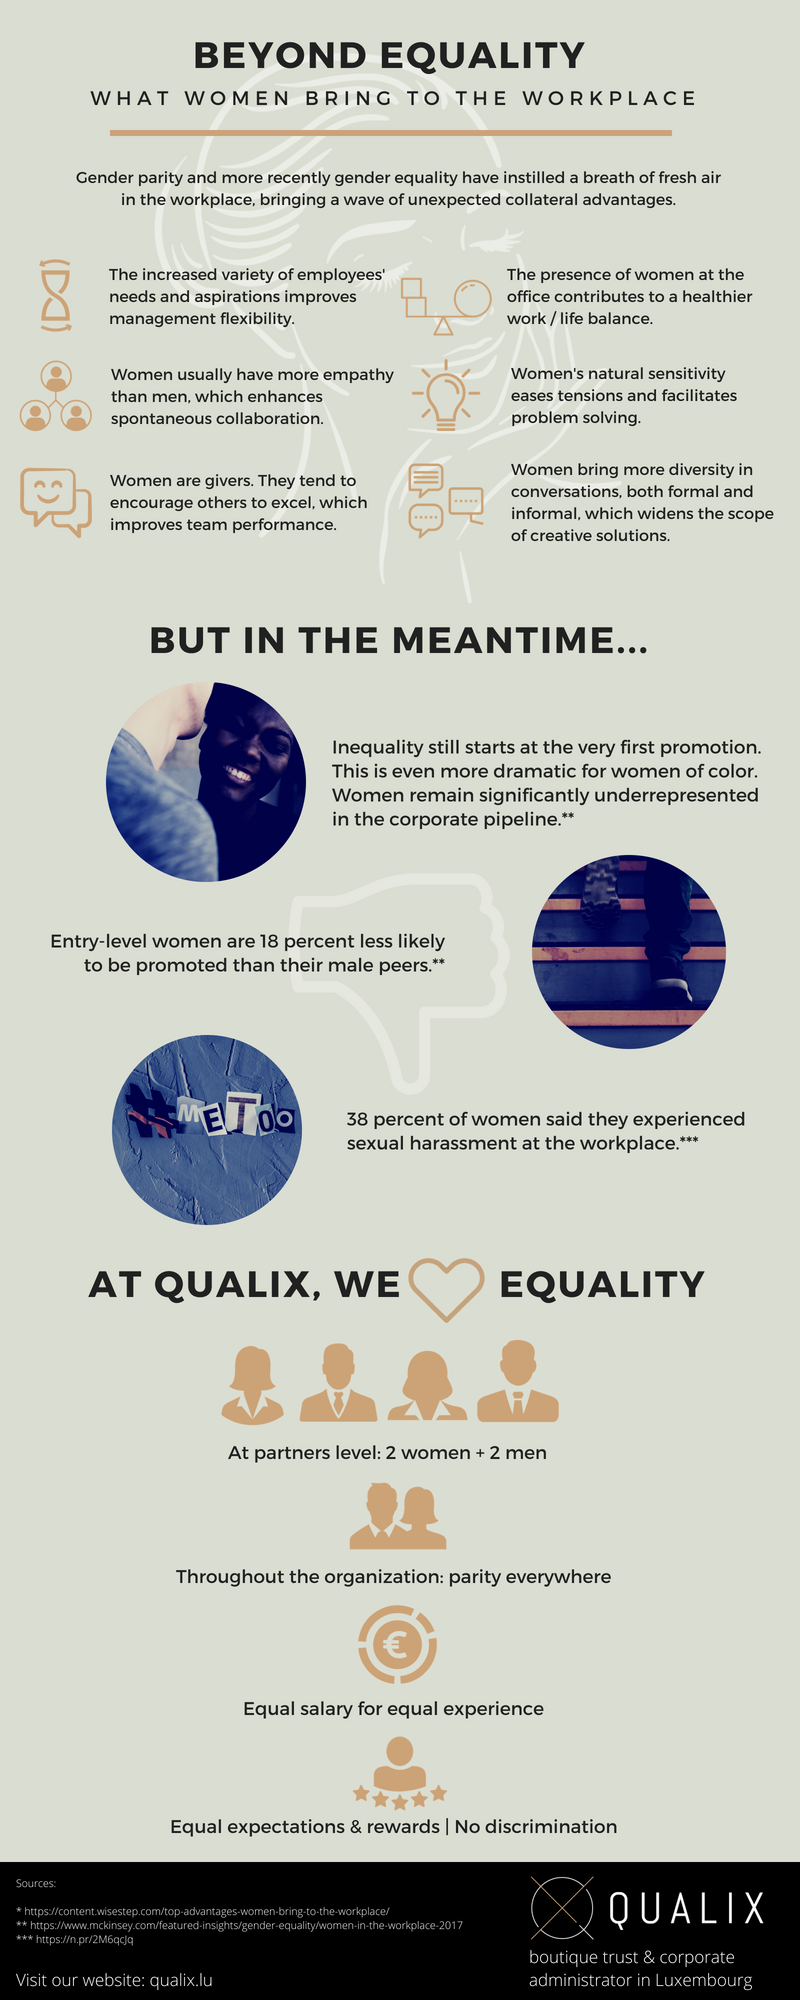 PARITY EQUALITY QUALIX LUXEMBOURG